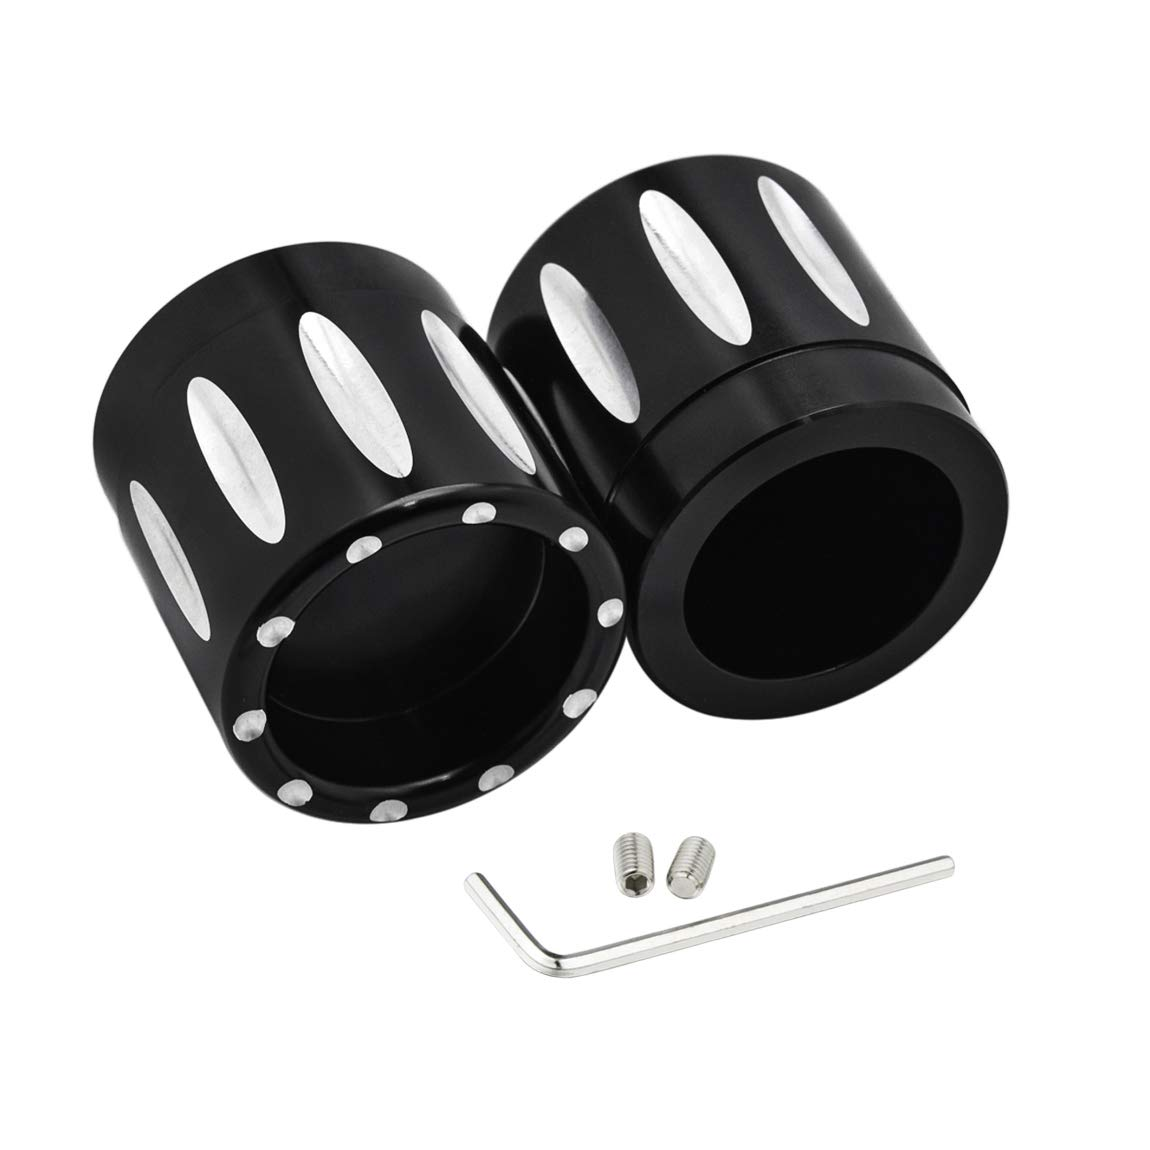 Lalaparts Black Front Axle Nut Covers Cap Compatible for Harley Touring Softail 2007-2018